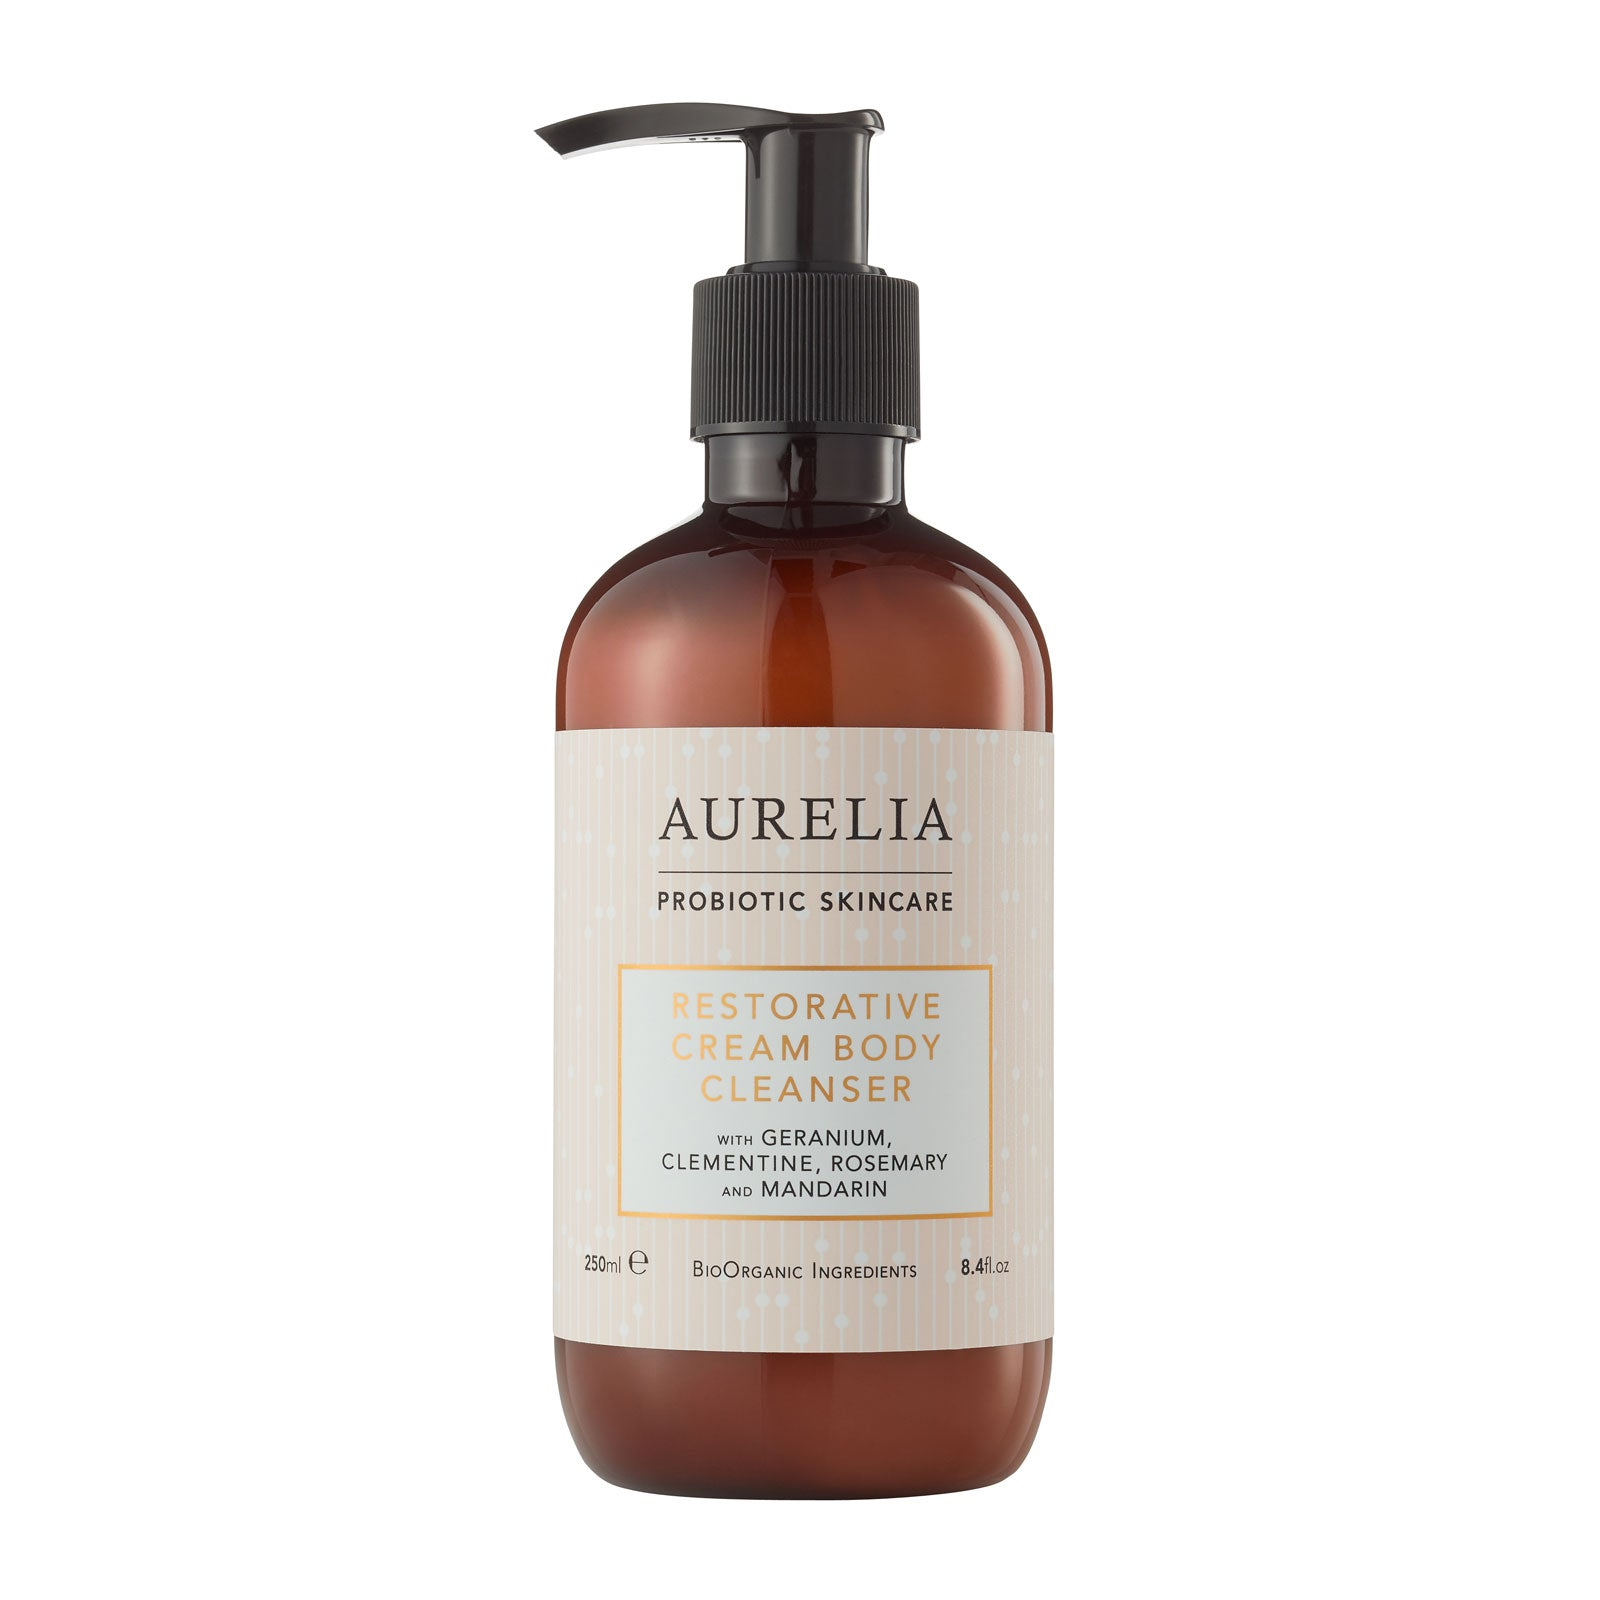 Aurelia Restorative Cream Body Cleanser 250ml